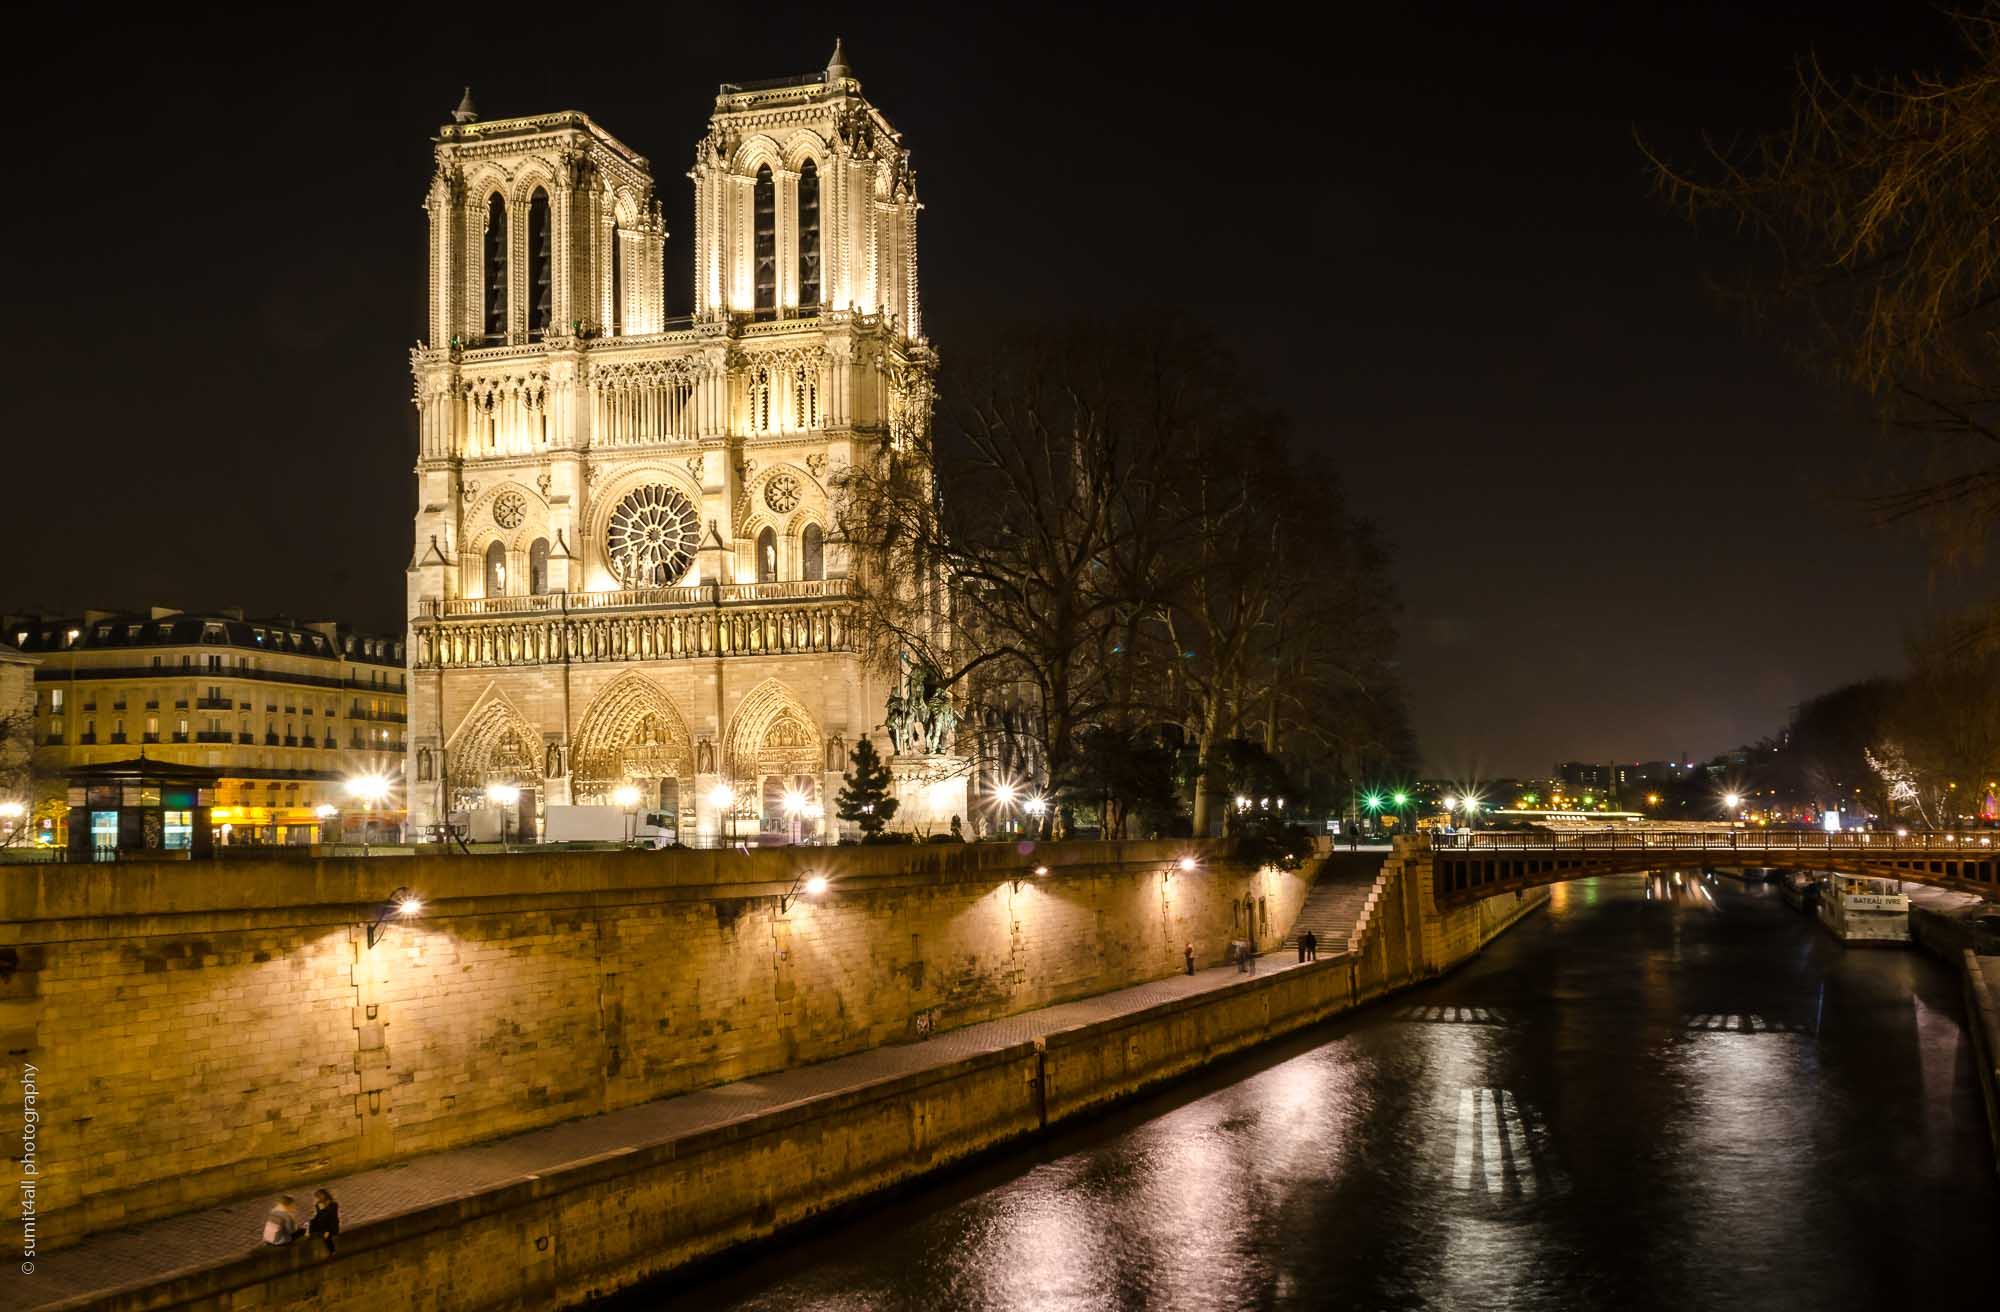 The Notre Dame at night from across the Siene